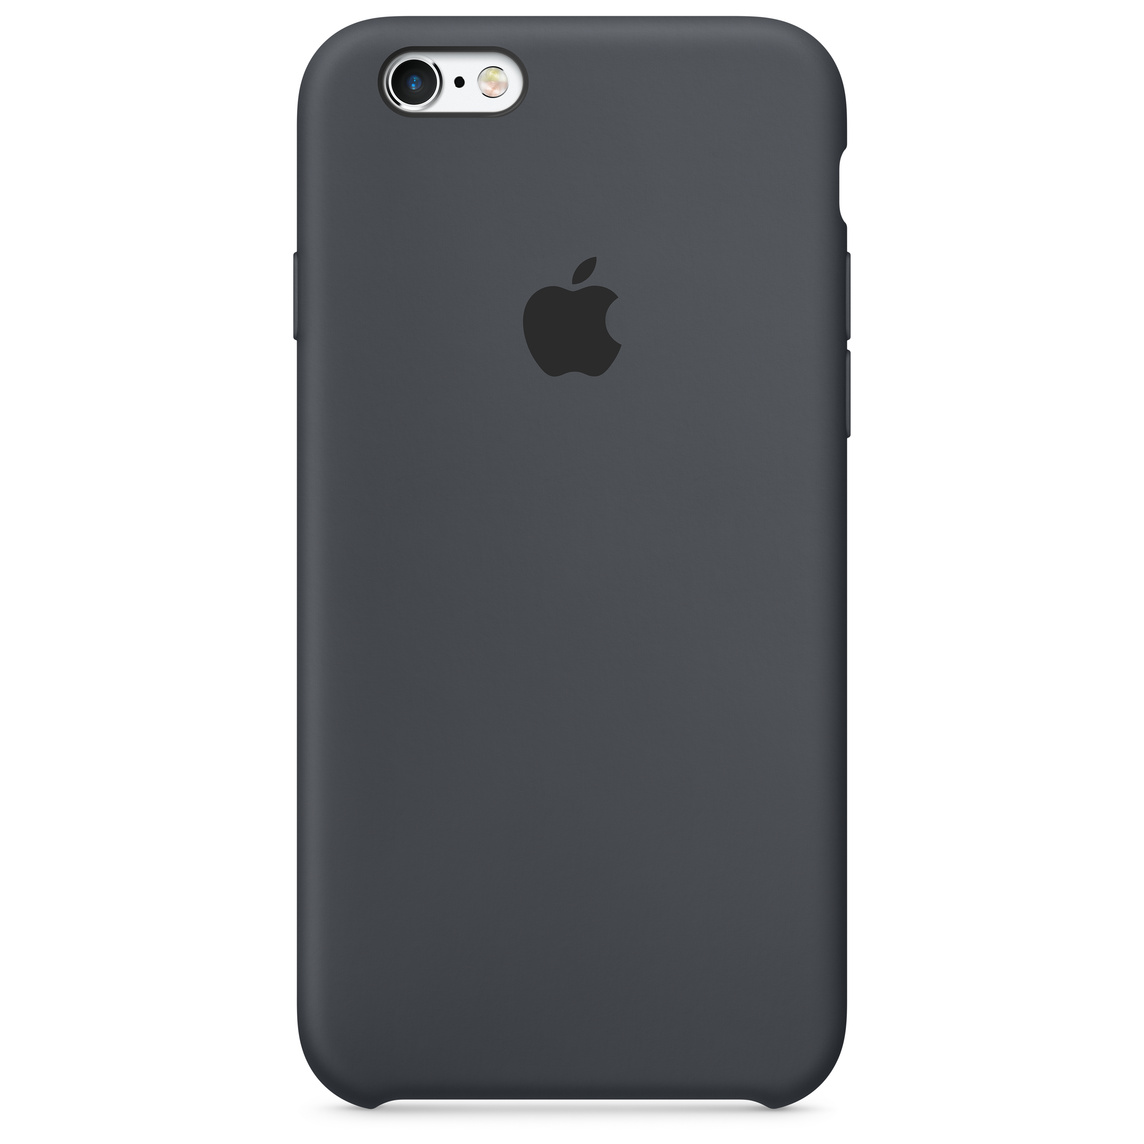 san francisco 20268 7ee50 iPhone 6 / 6s Silicone Case - Charcoal Grey